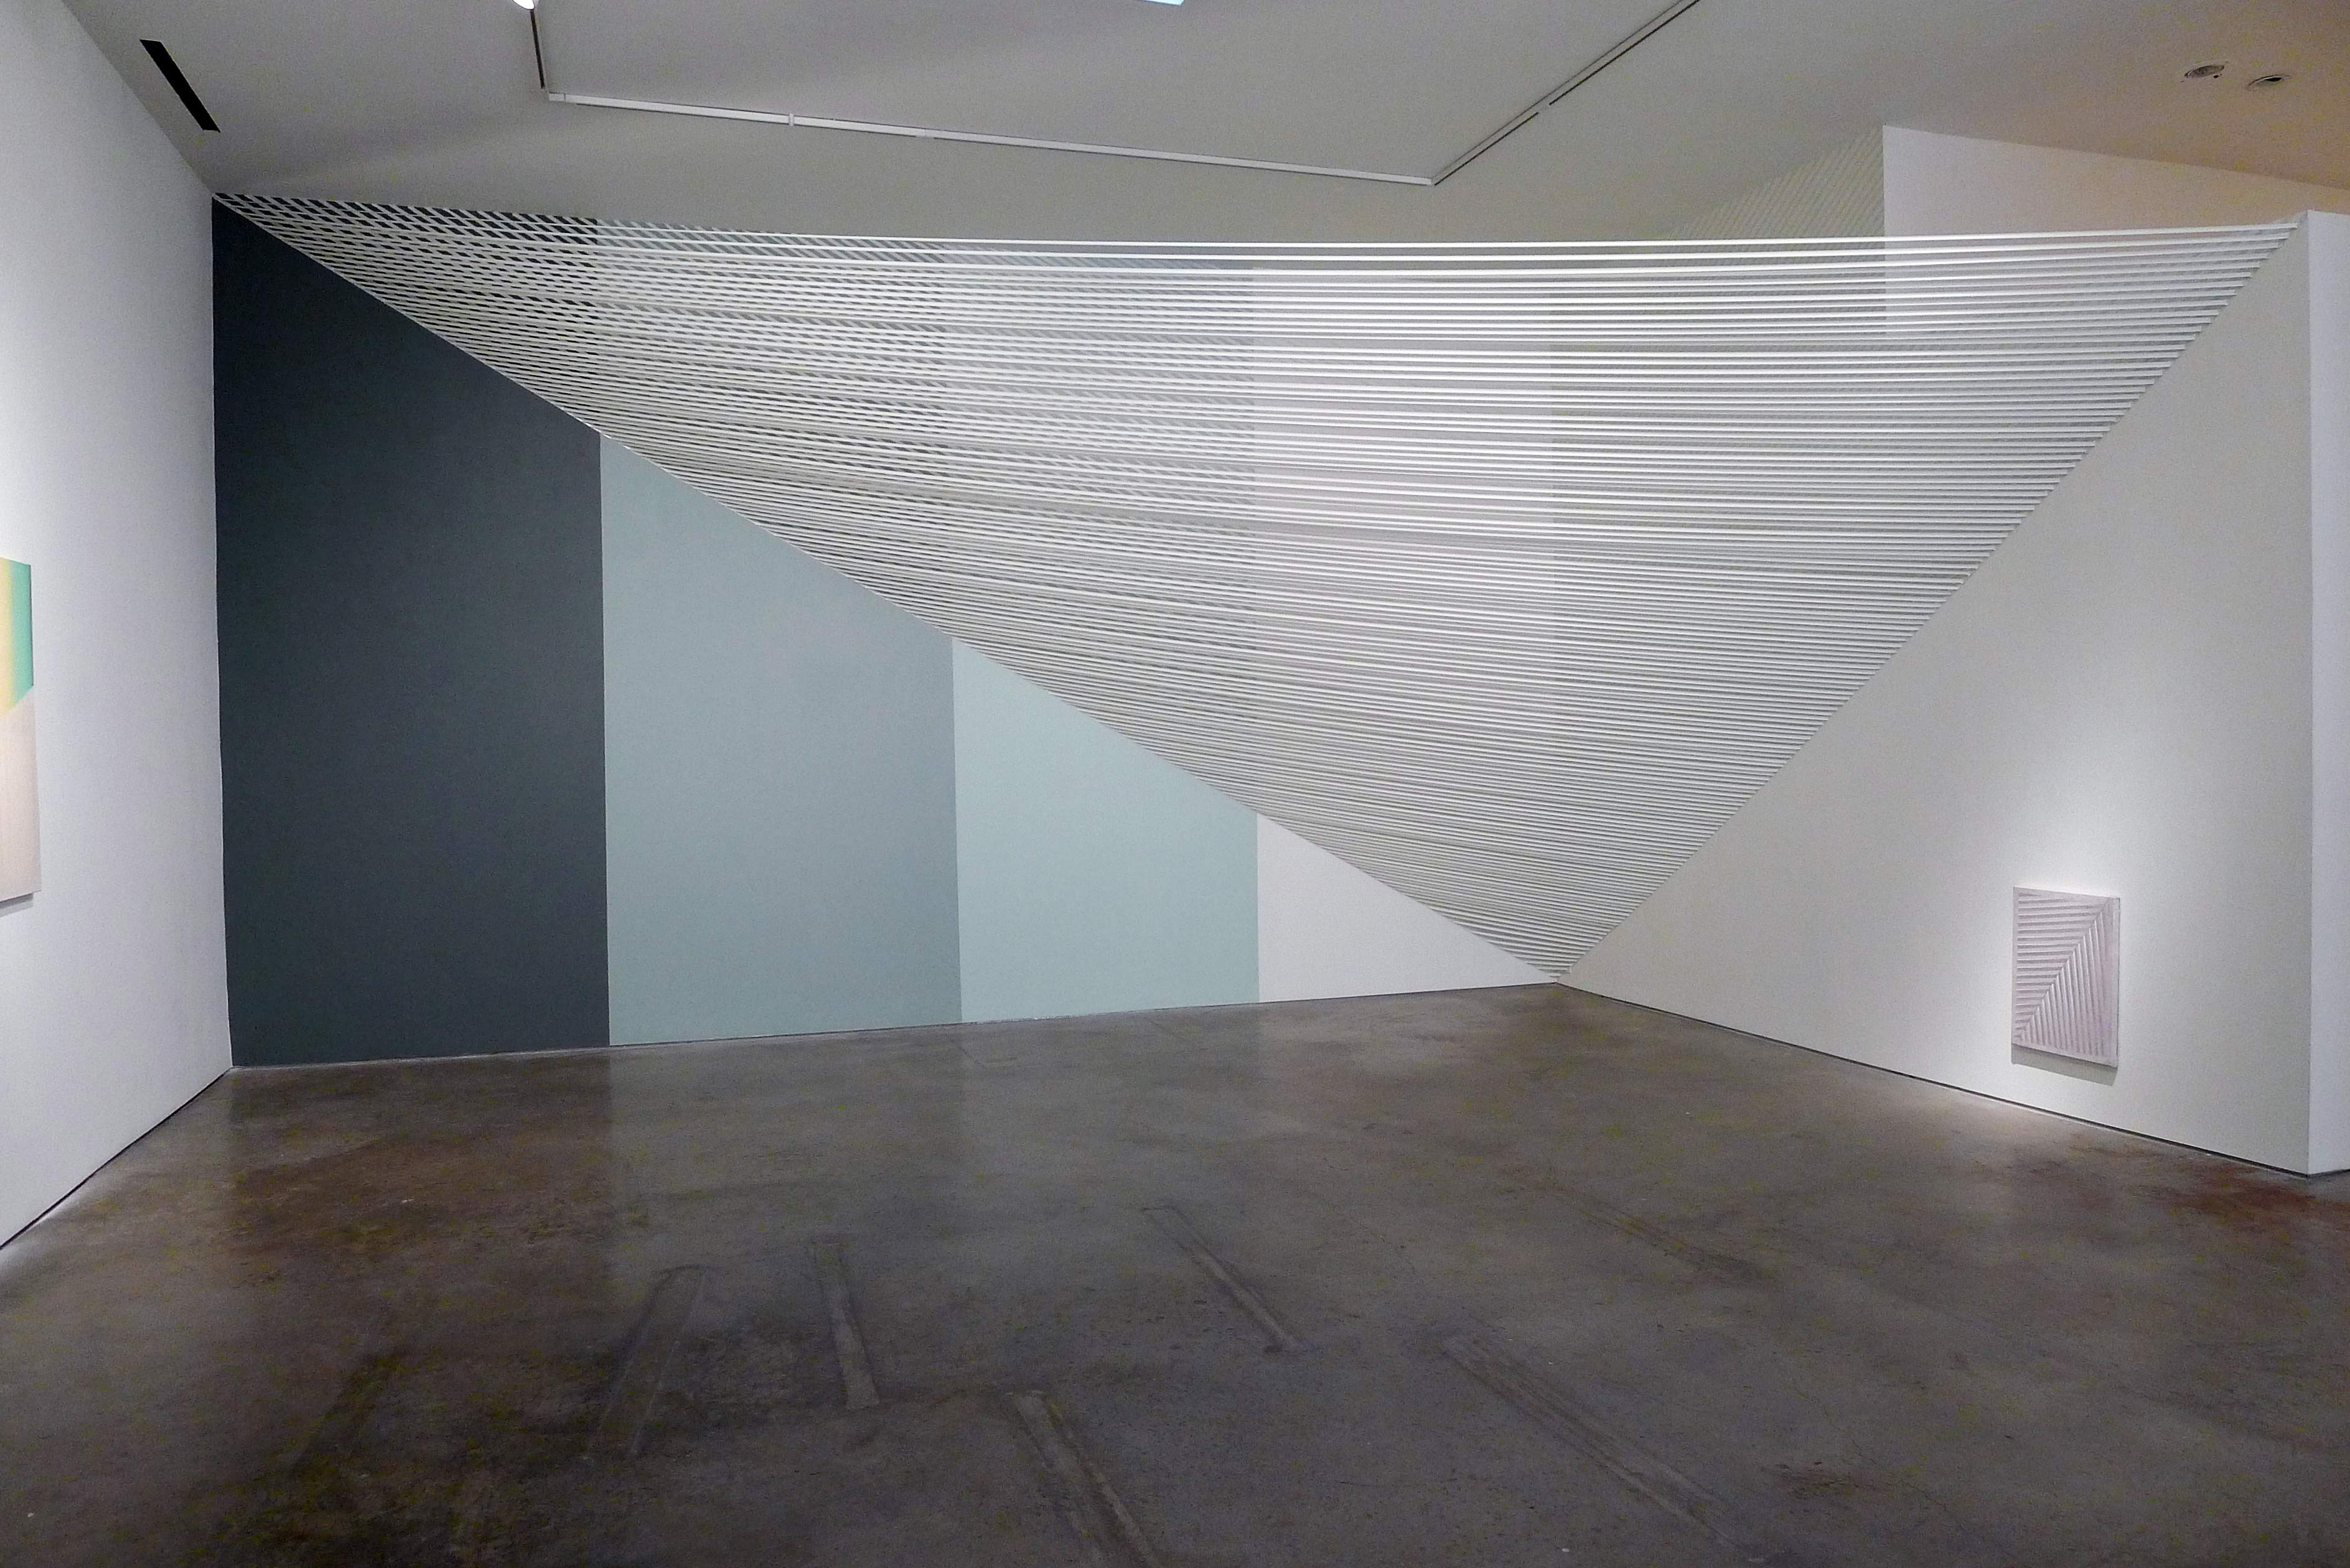 Rebecca Ward 'Shucked and Silked' 2013, Barbara David Gallery. Courtesy the artist and Ronchini Gallery